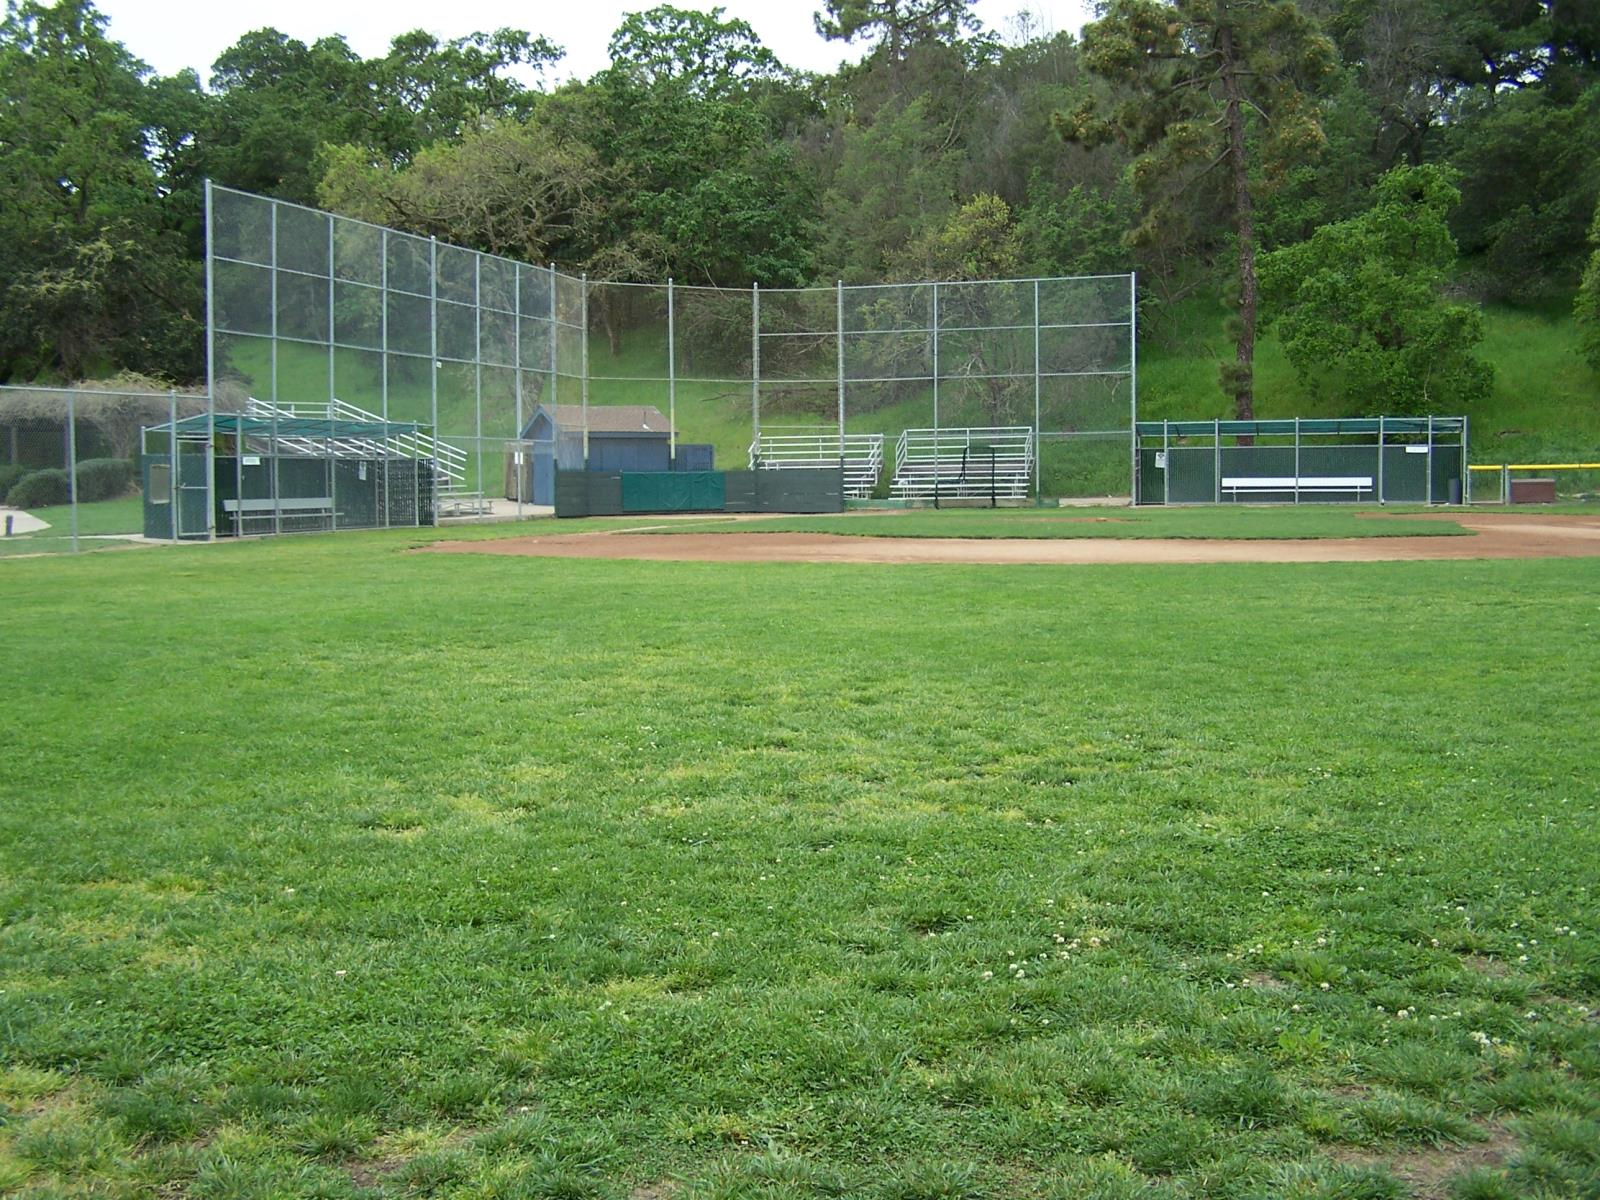 Picture of Dunphy Little League Field